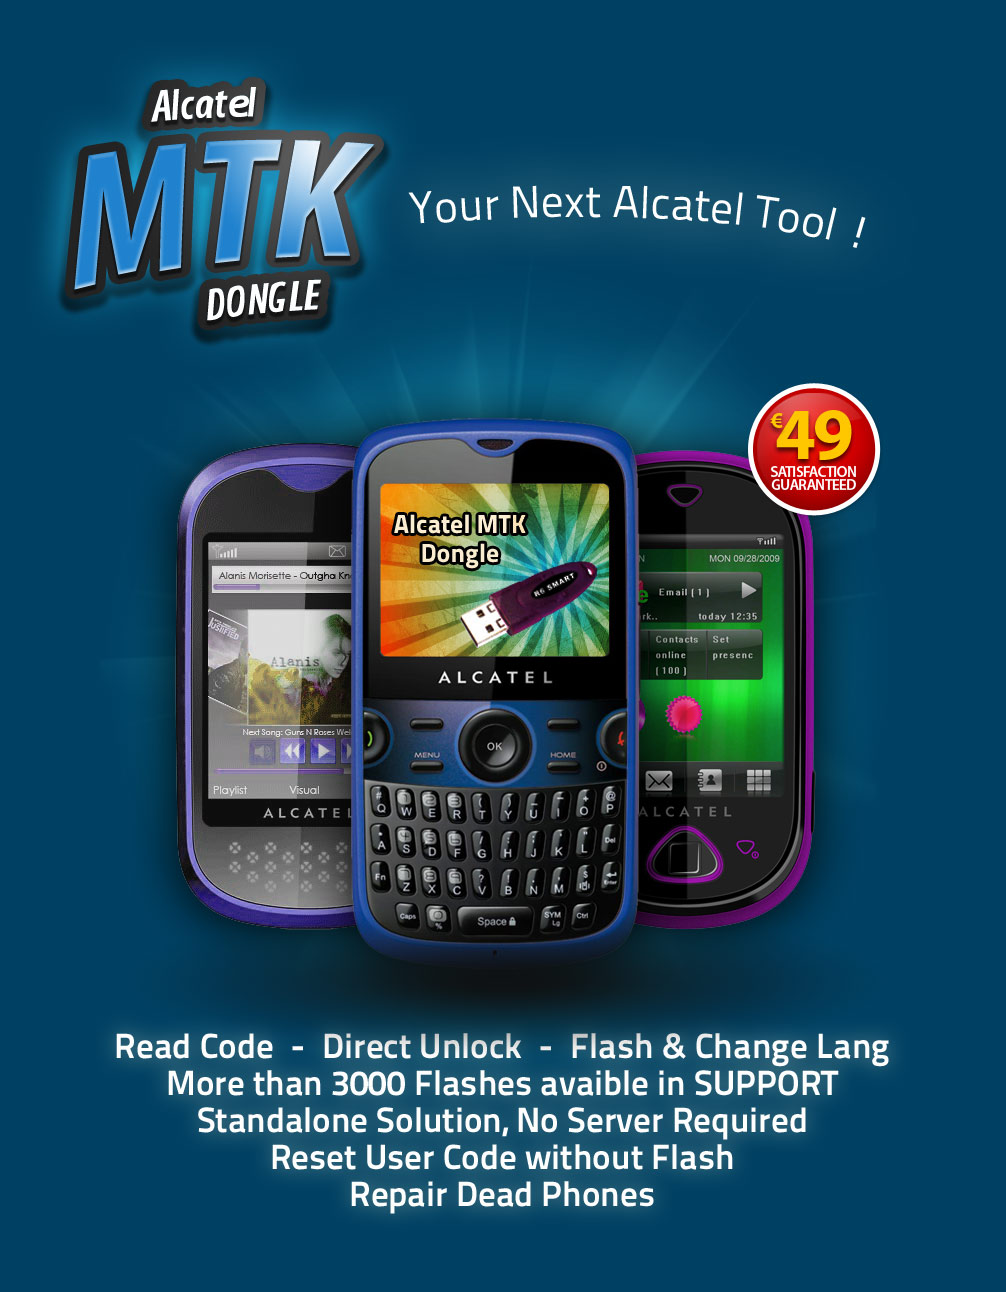 Alcatel MTK Dongle - Your Next Alcatel Tool